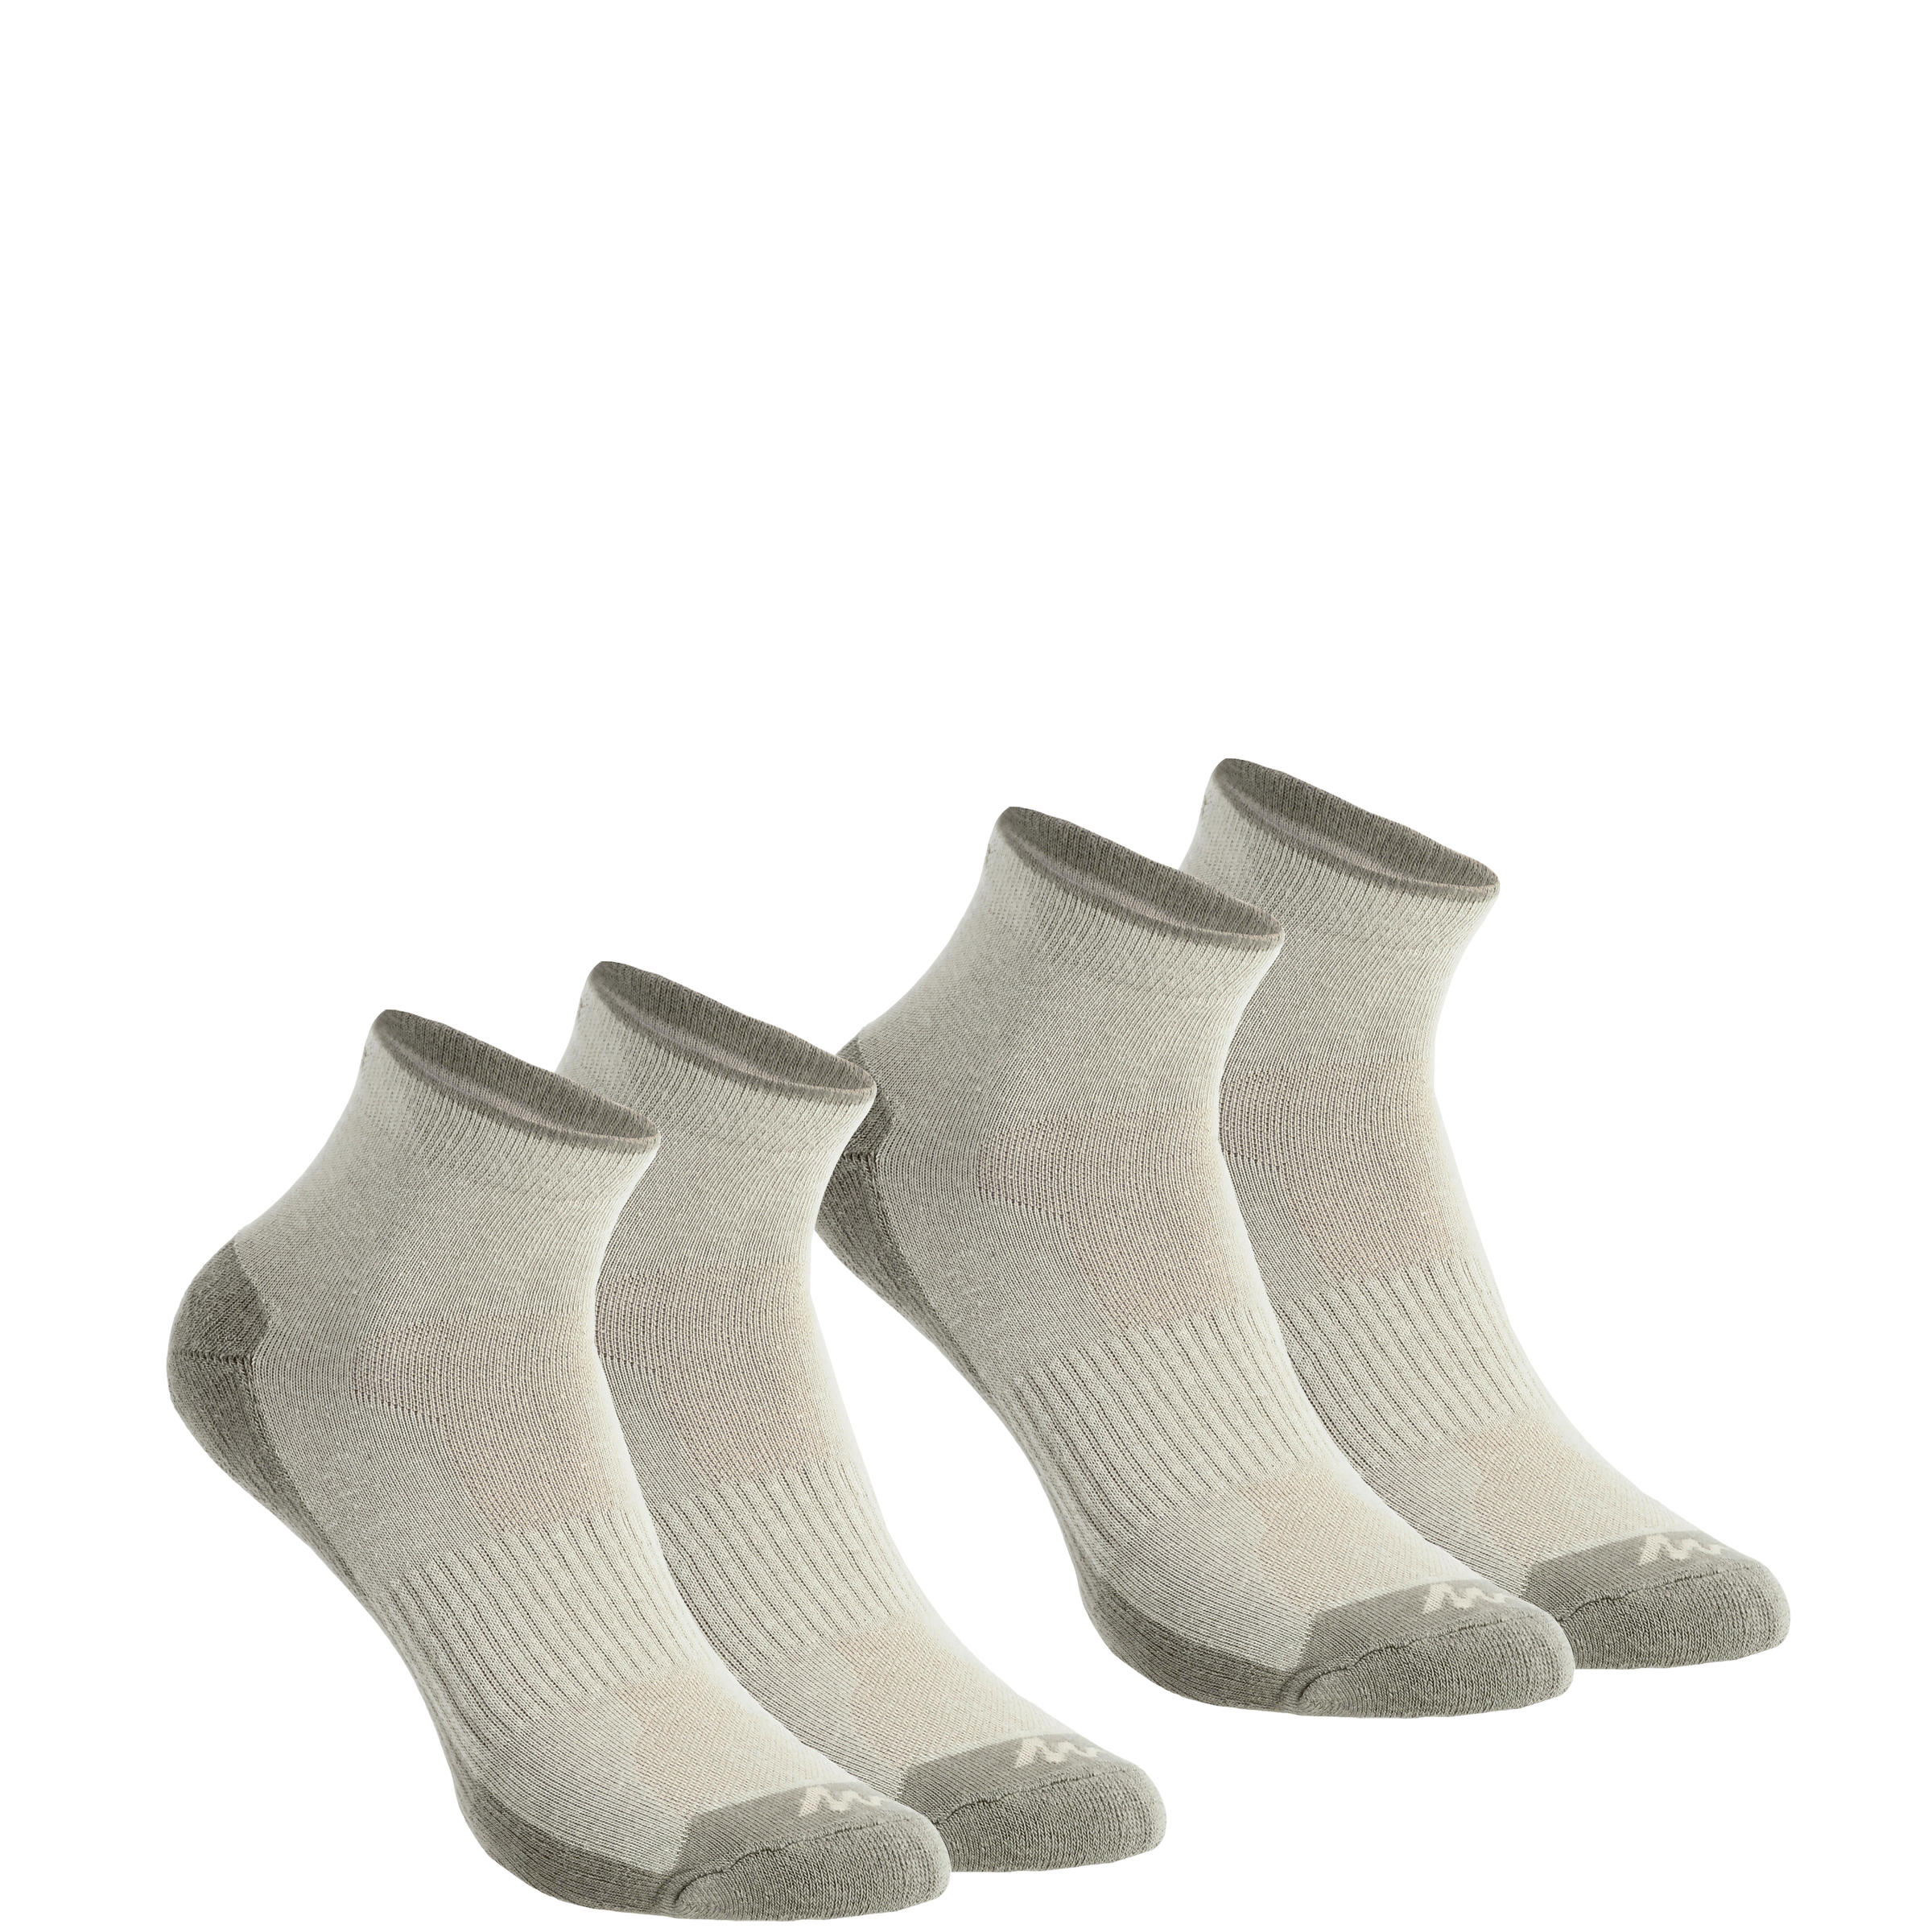 2 pairs of adult's medium Arpenaz 50 hiking socks in beige.